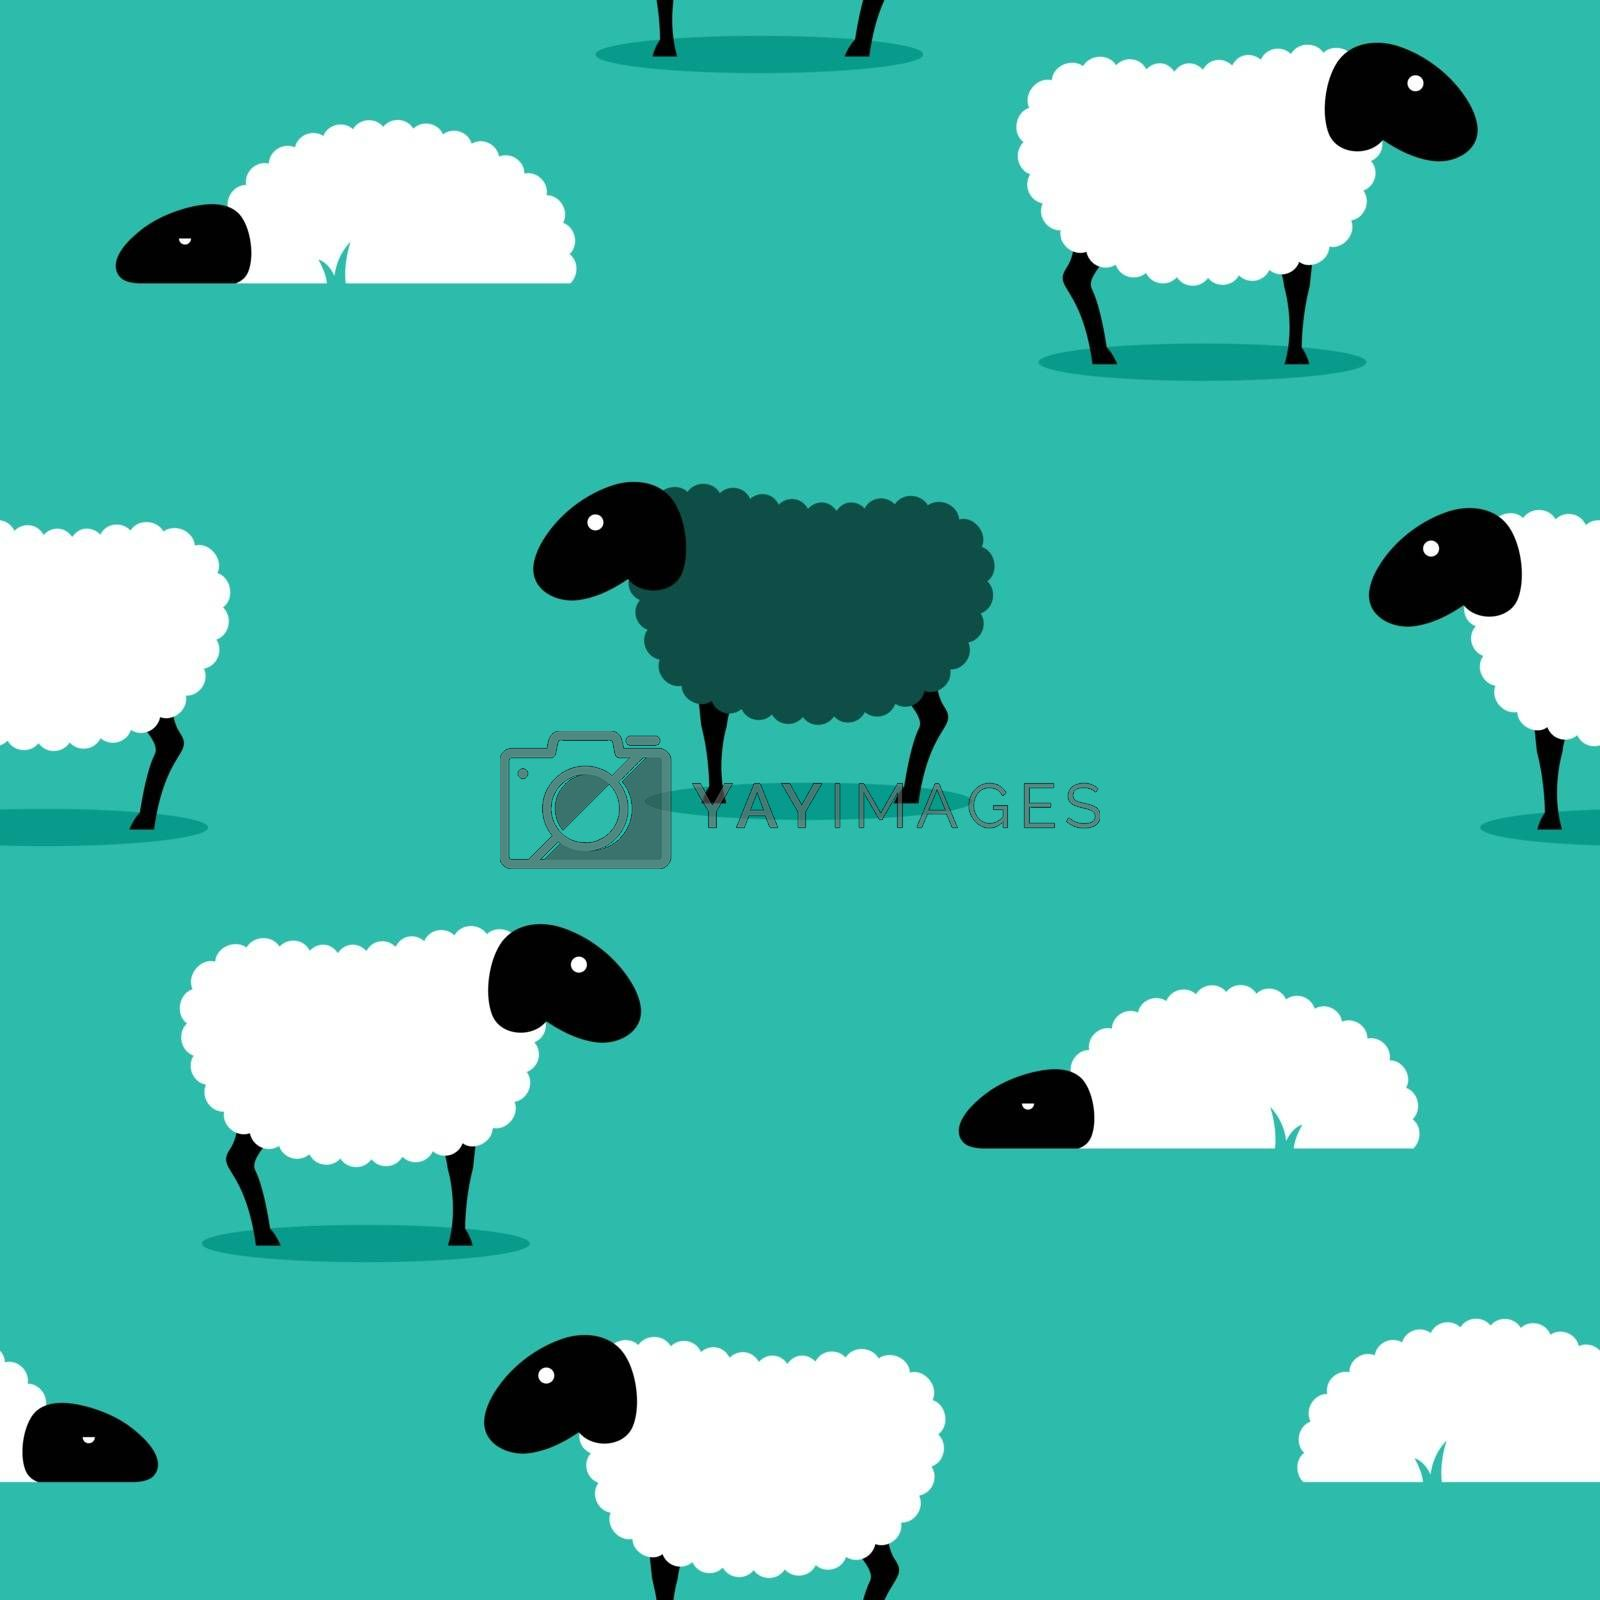 2D vector of a black sheep amongst white sheep on a green solid background, eps8.